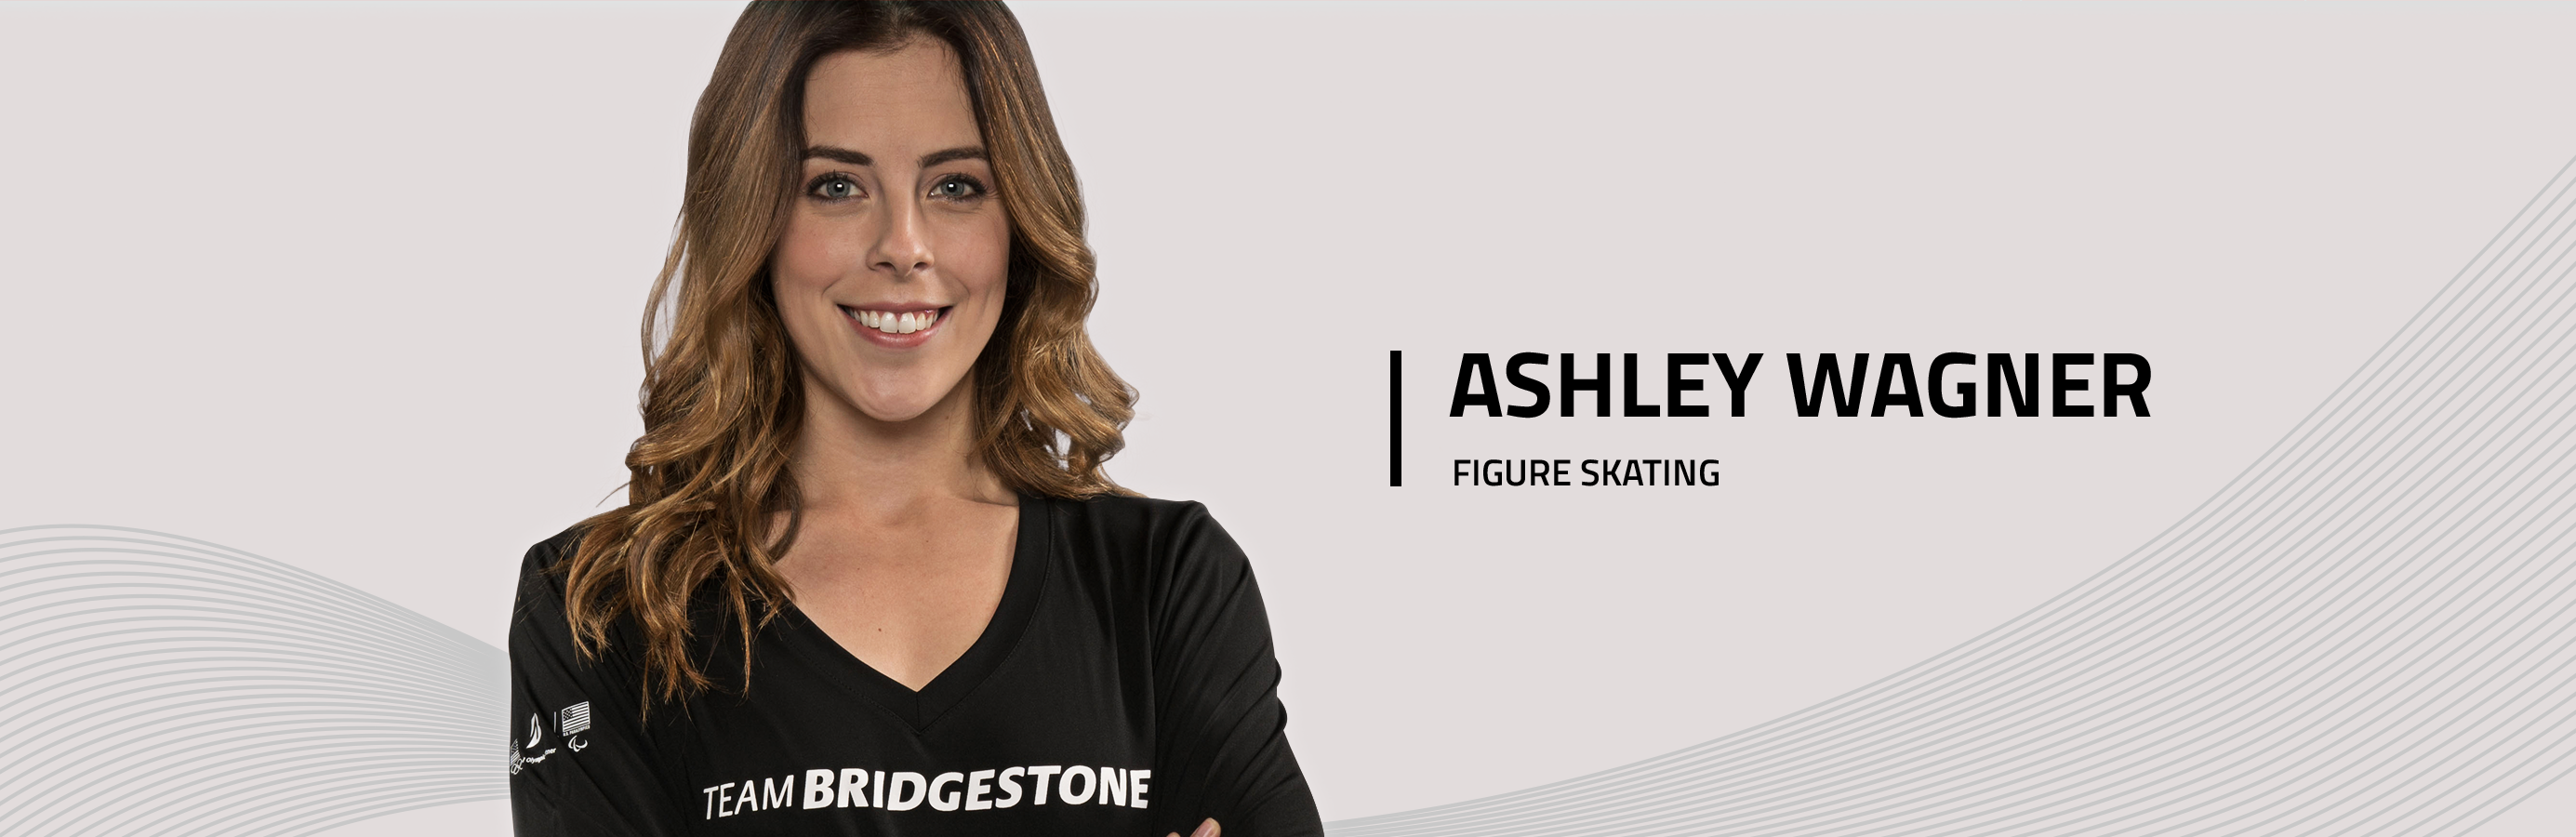 Bridgestone Olympic Partner Ashley Wagner